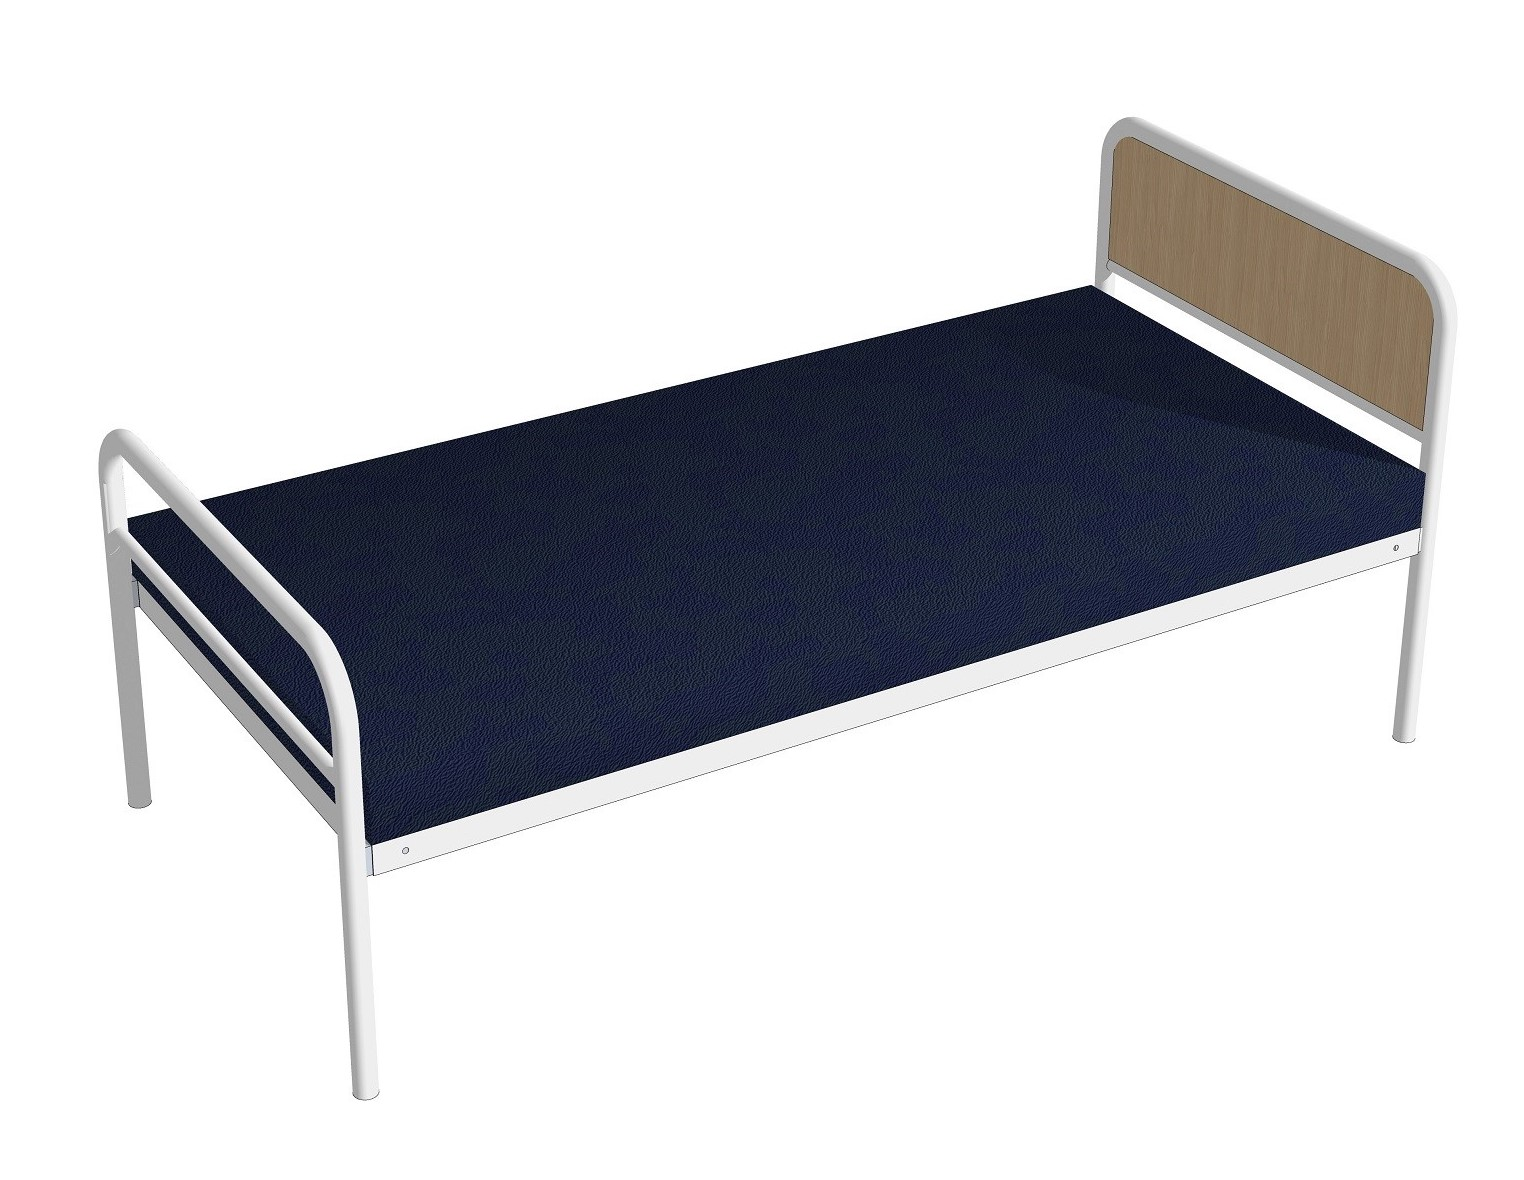 Medical Emergency Equipment Medistar Emergency Hospital Bed, with panel headboard, side view